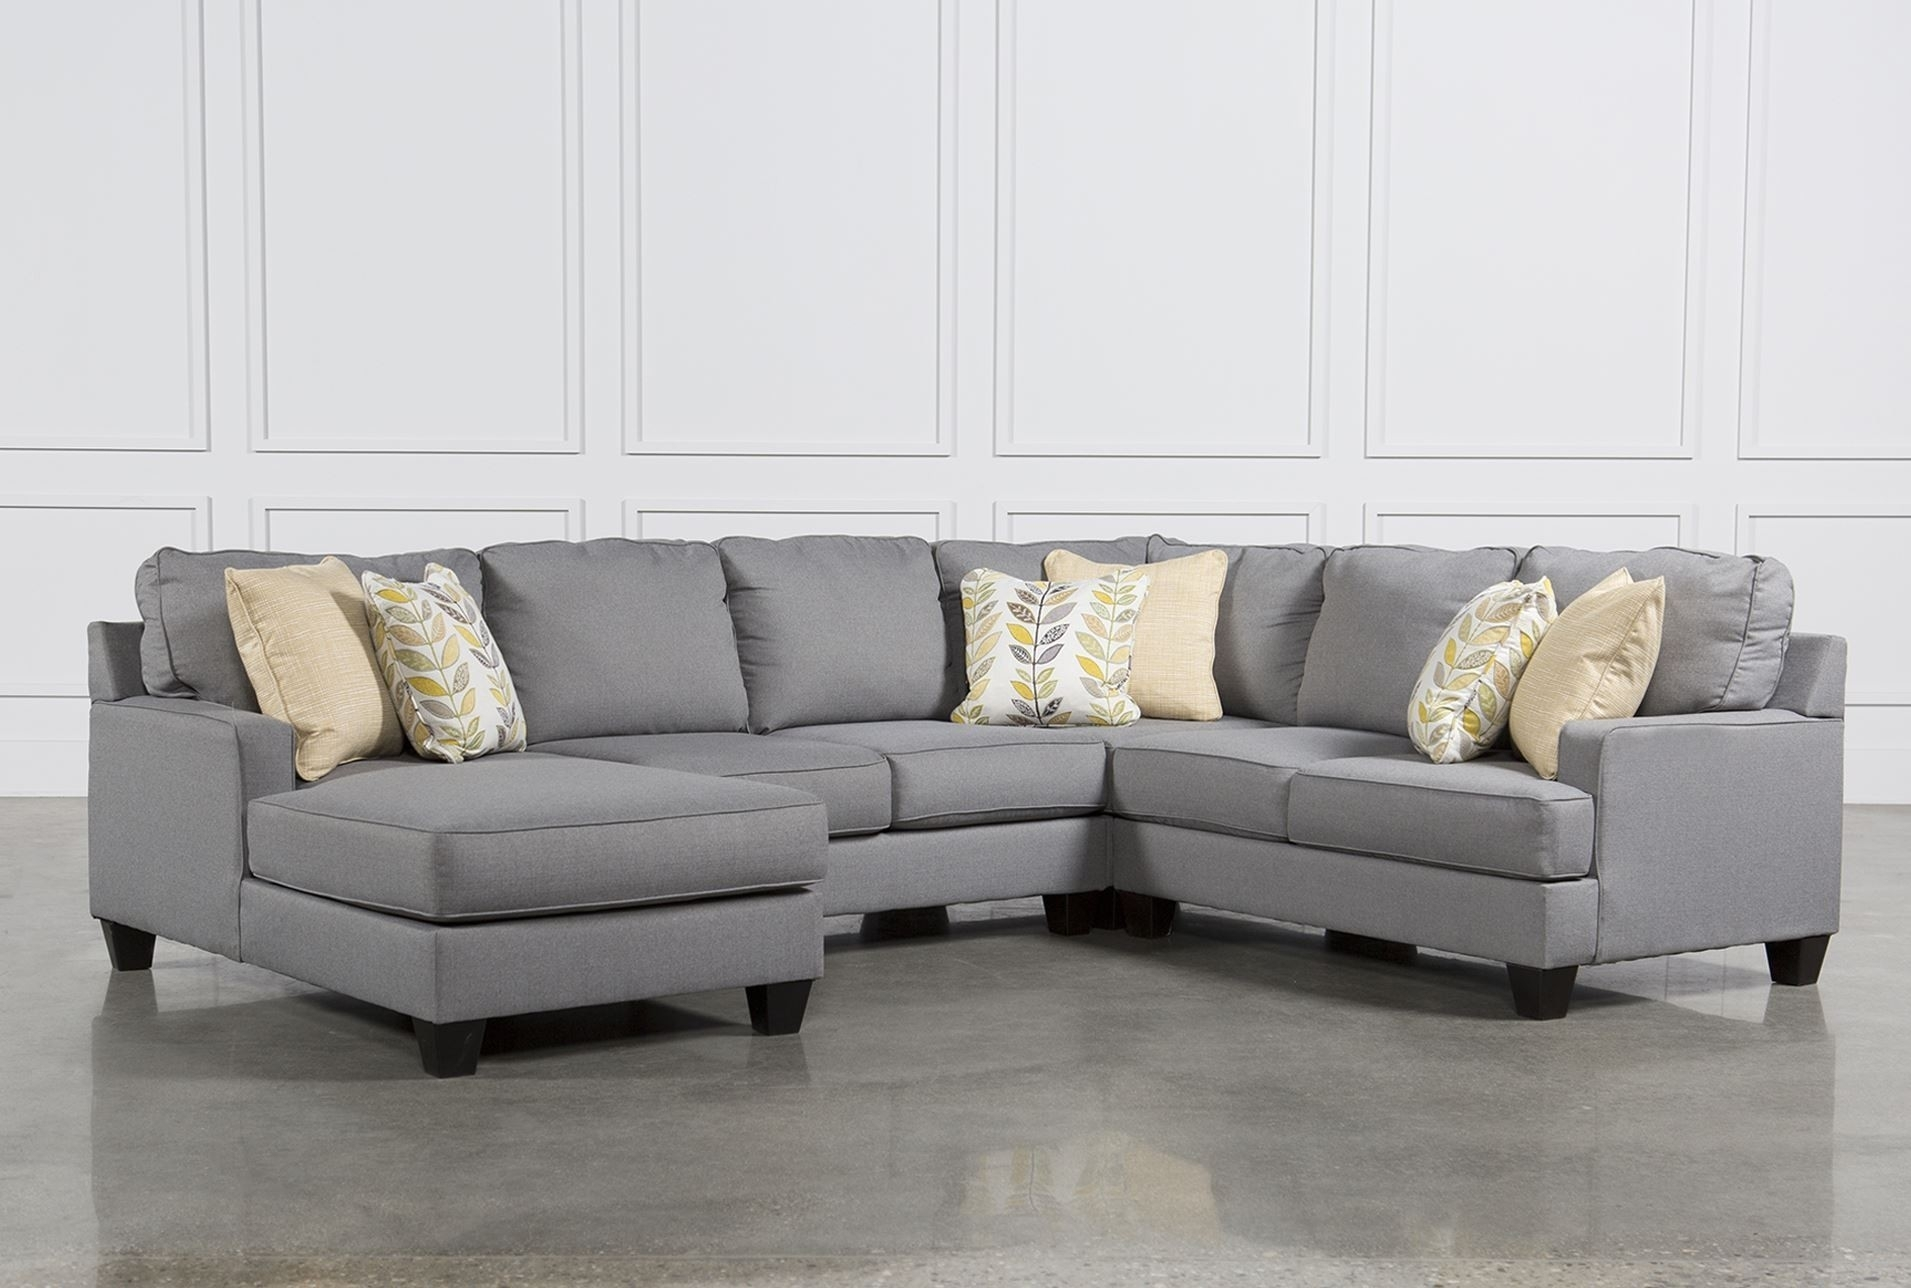 Living Spaces Sectional Sofas – Implantologiabogota (View 17 of 25)